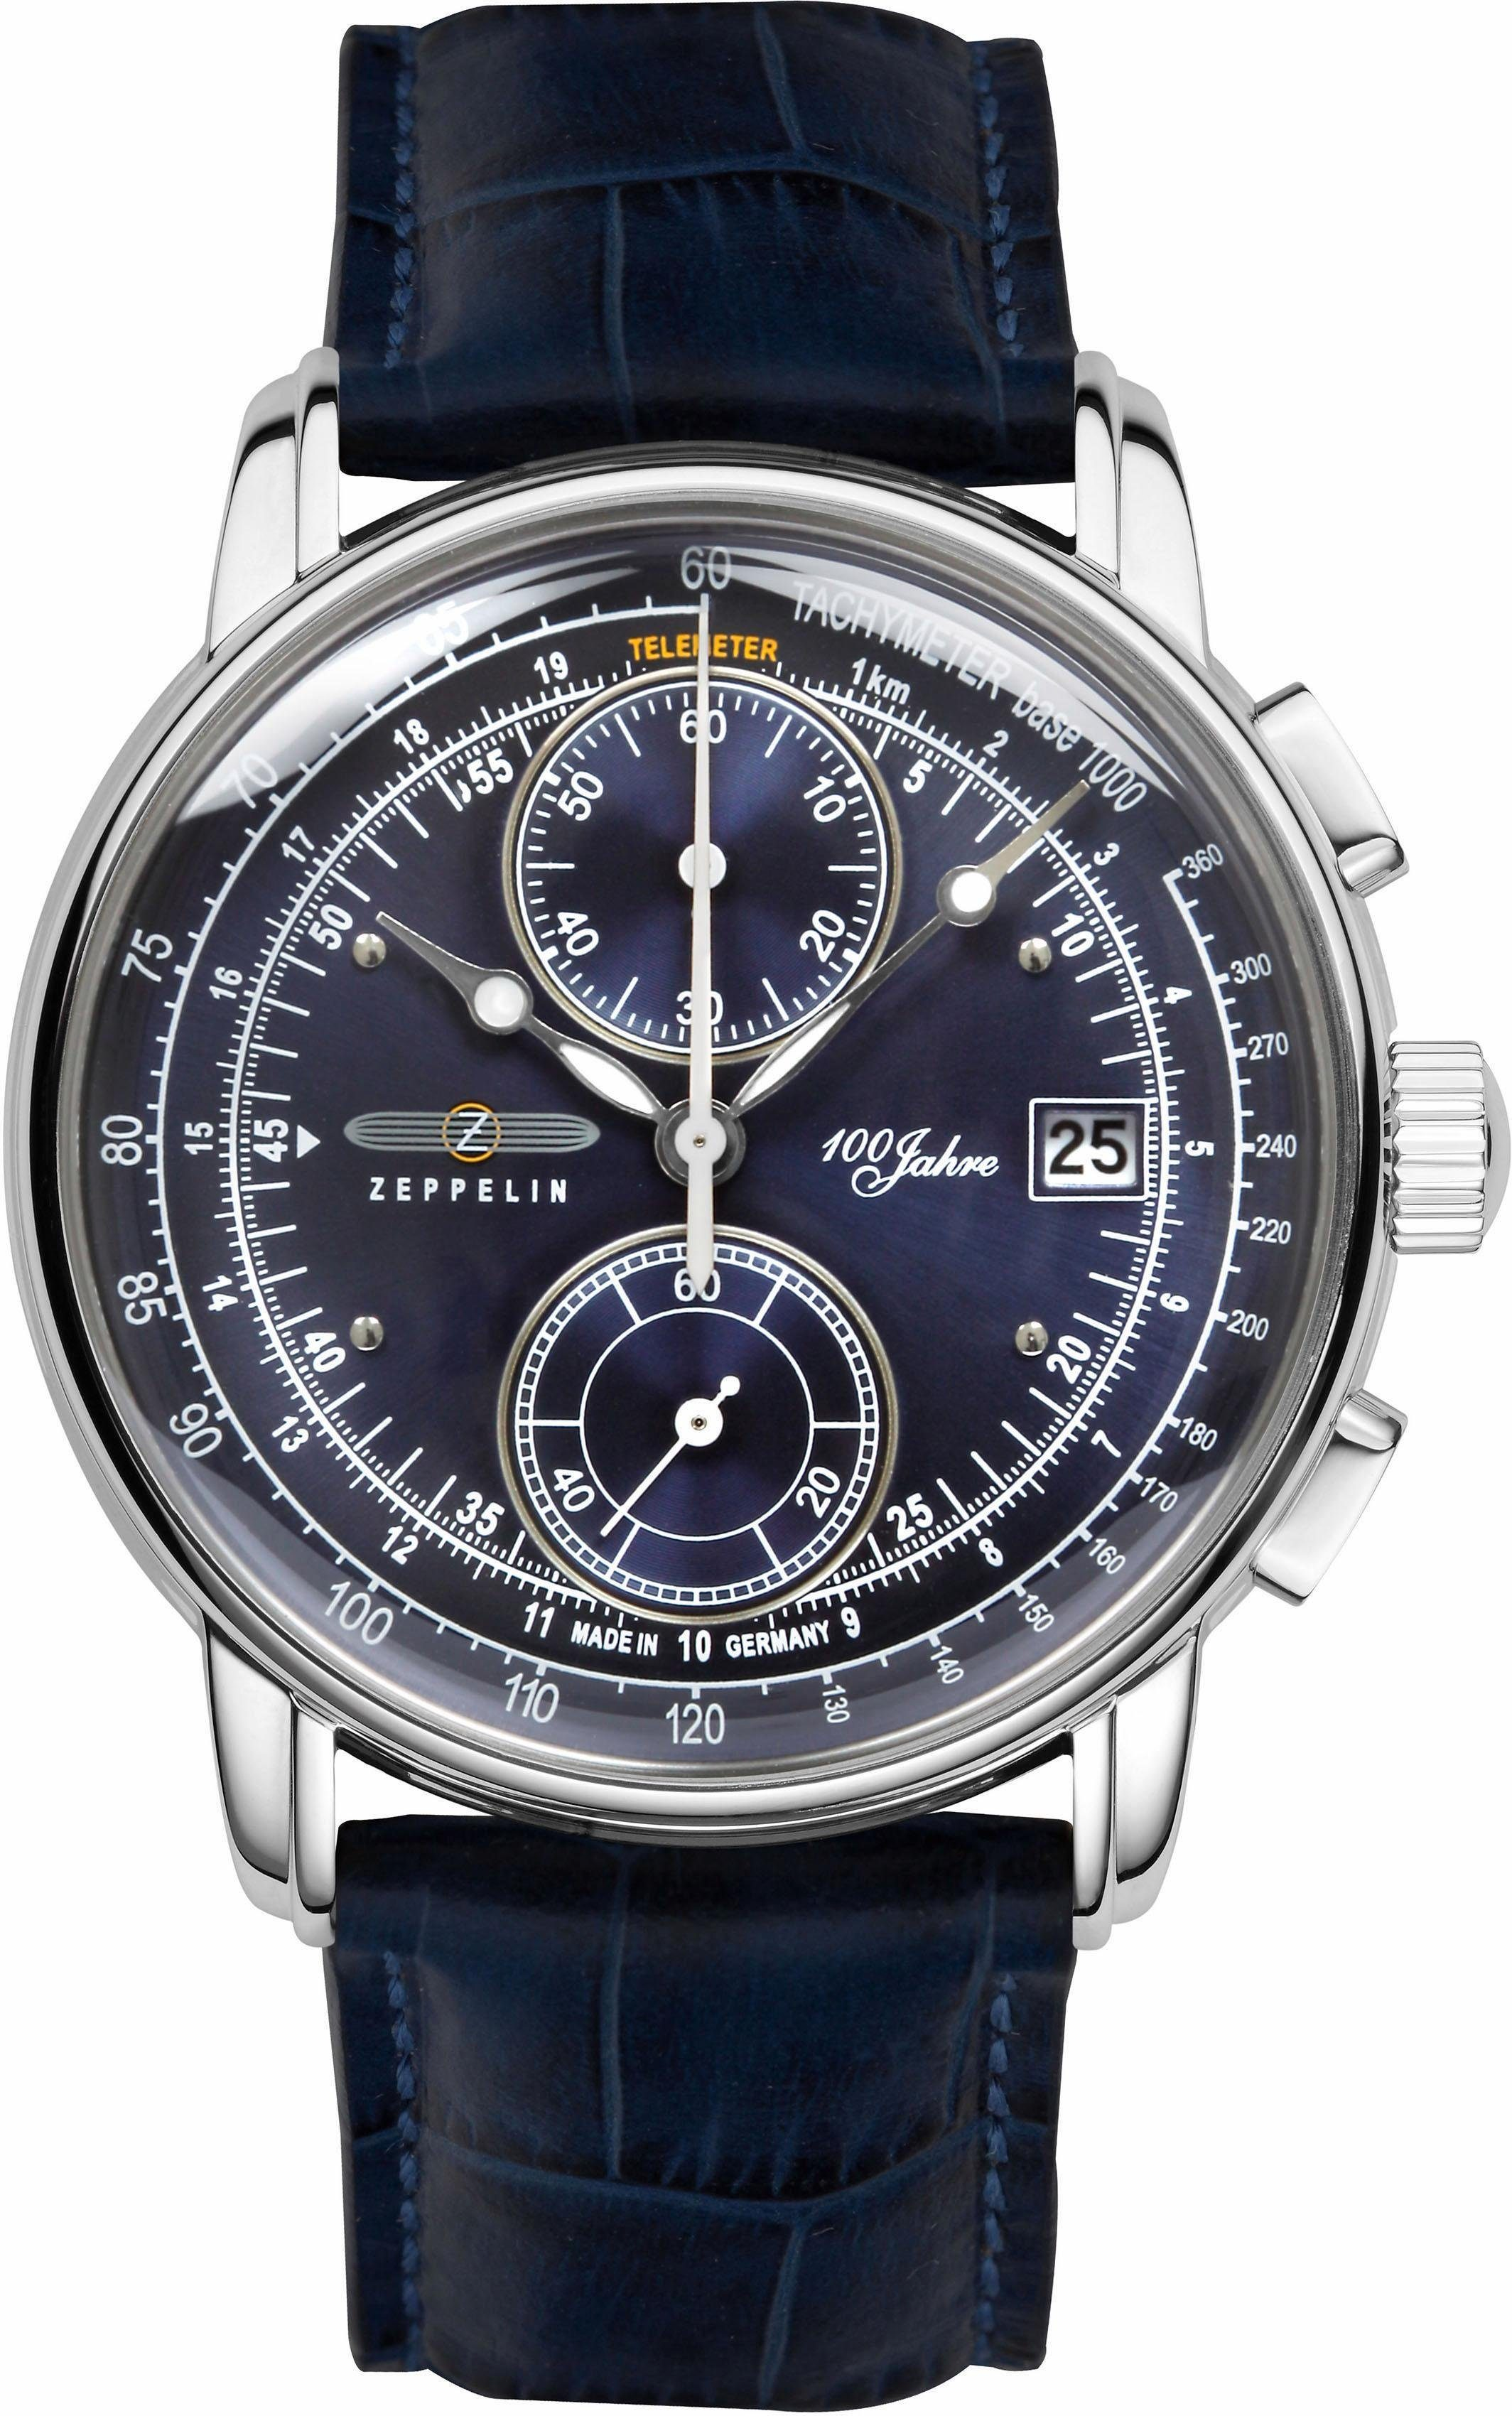 ZEPPELIN Chronograph »100 Jahre Zeppelin, 86703« made in Germany